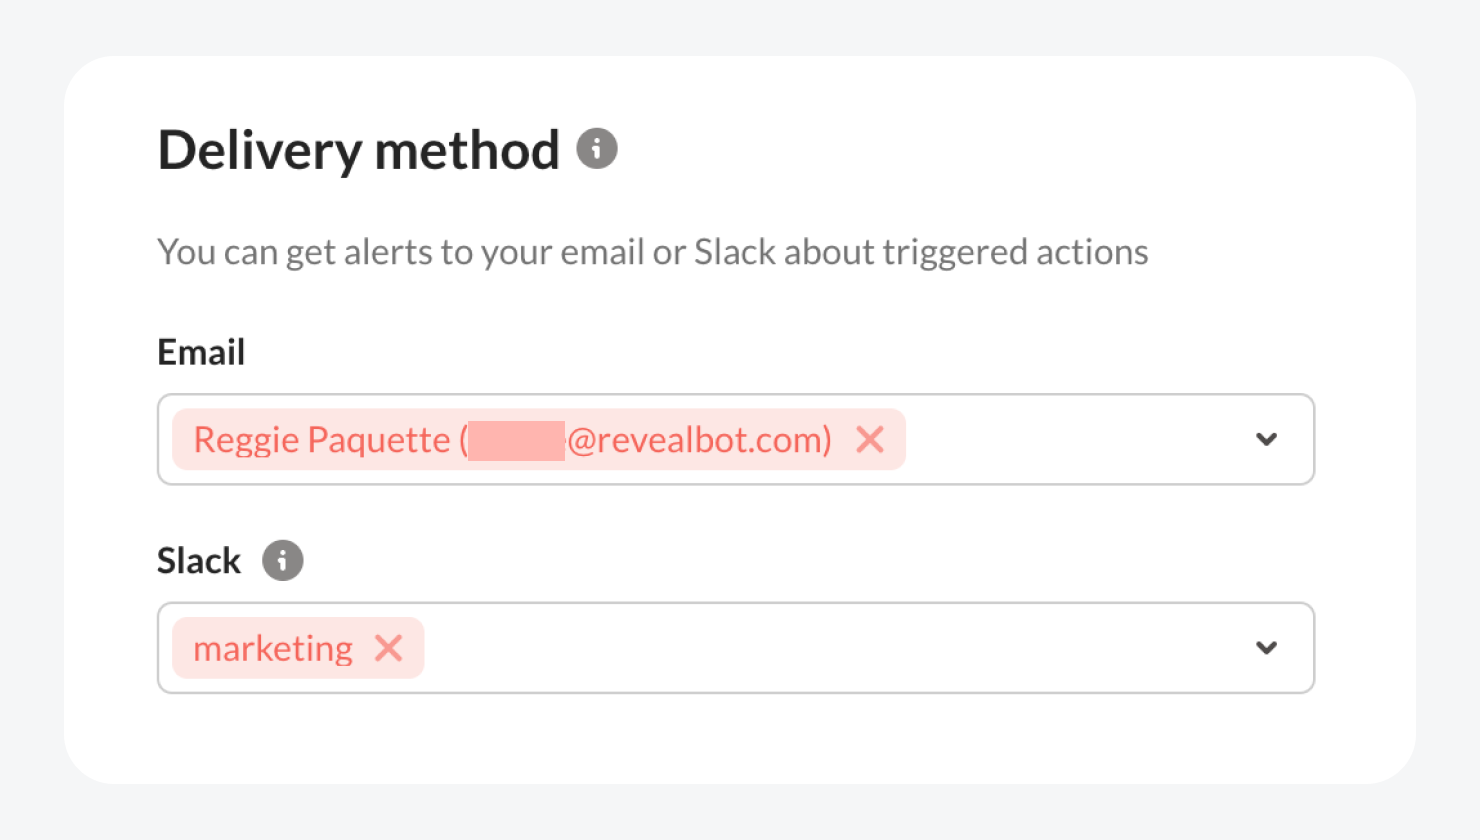 You can select multiple email addresses and Slack channels to deliver your reports.